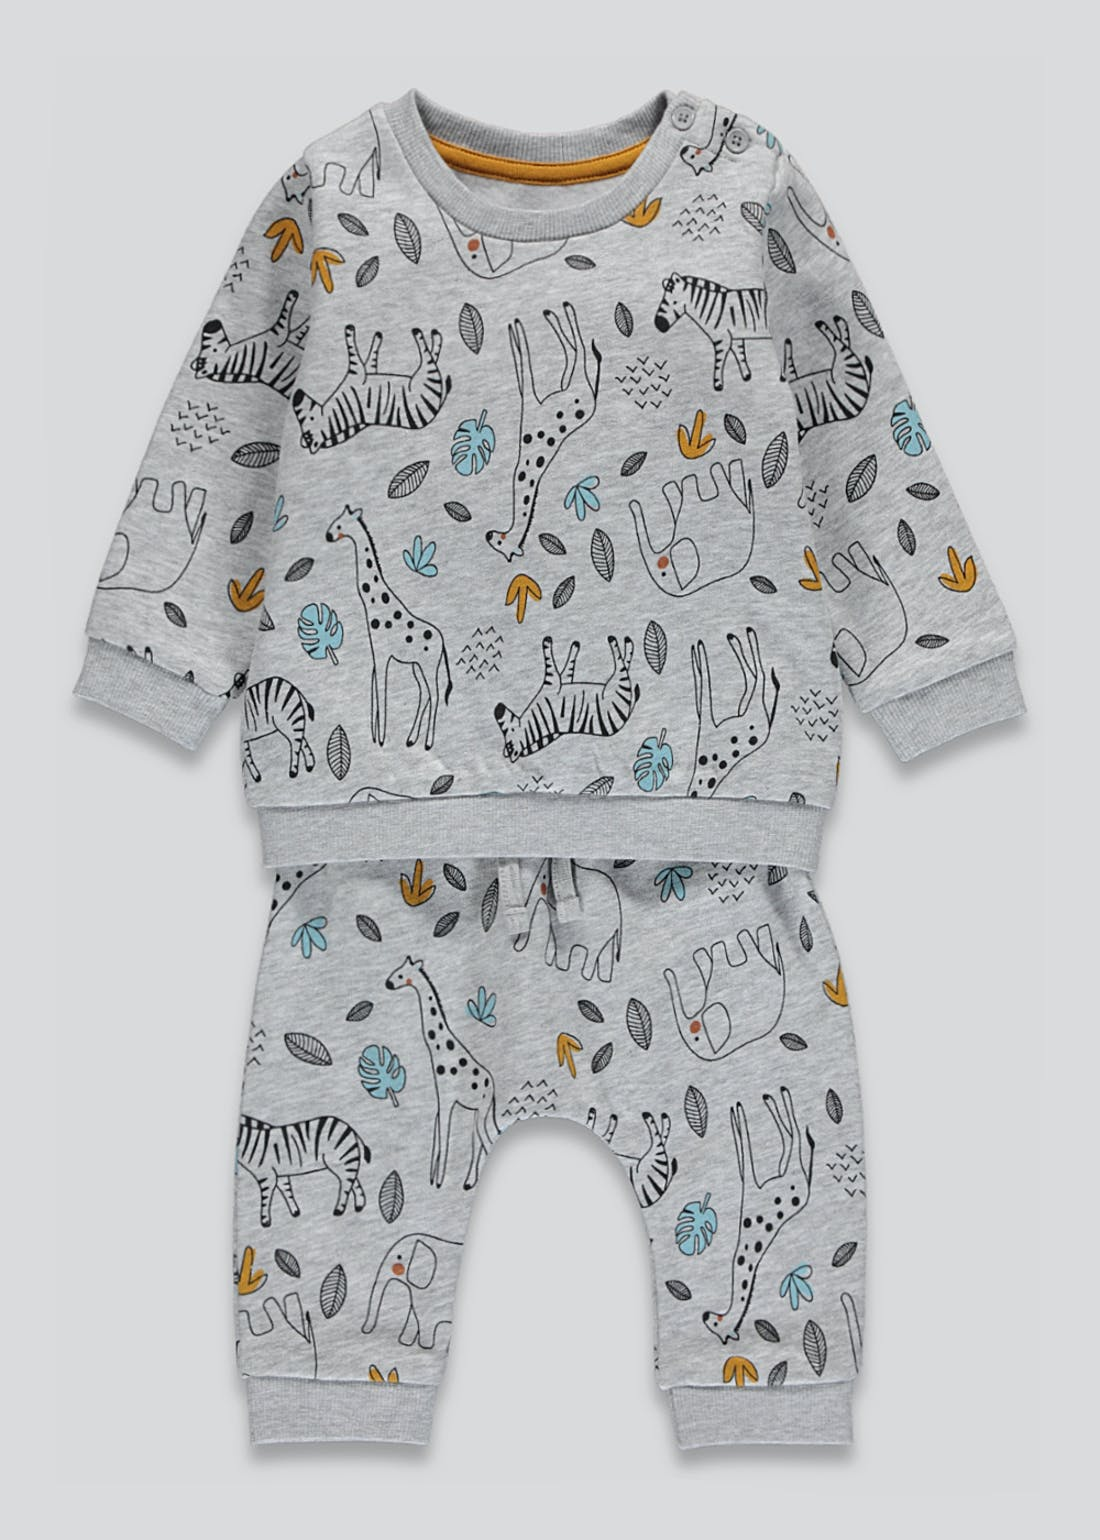 Unisex Animal Print Set (Tiny Baby-23mths)